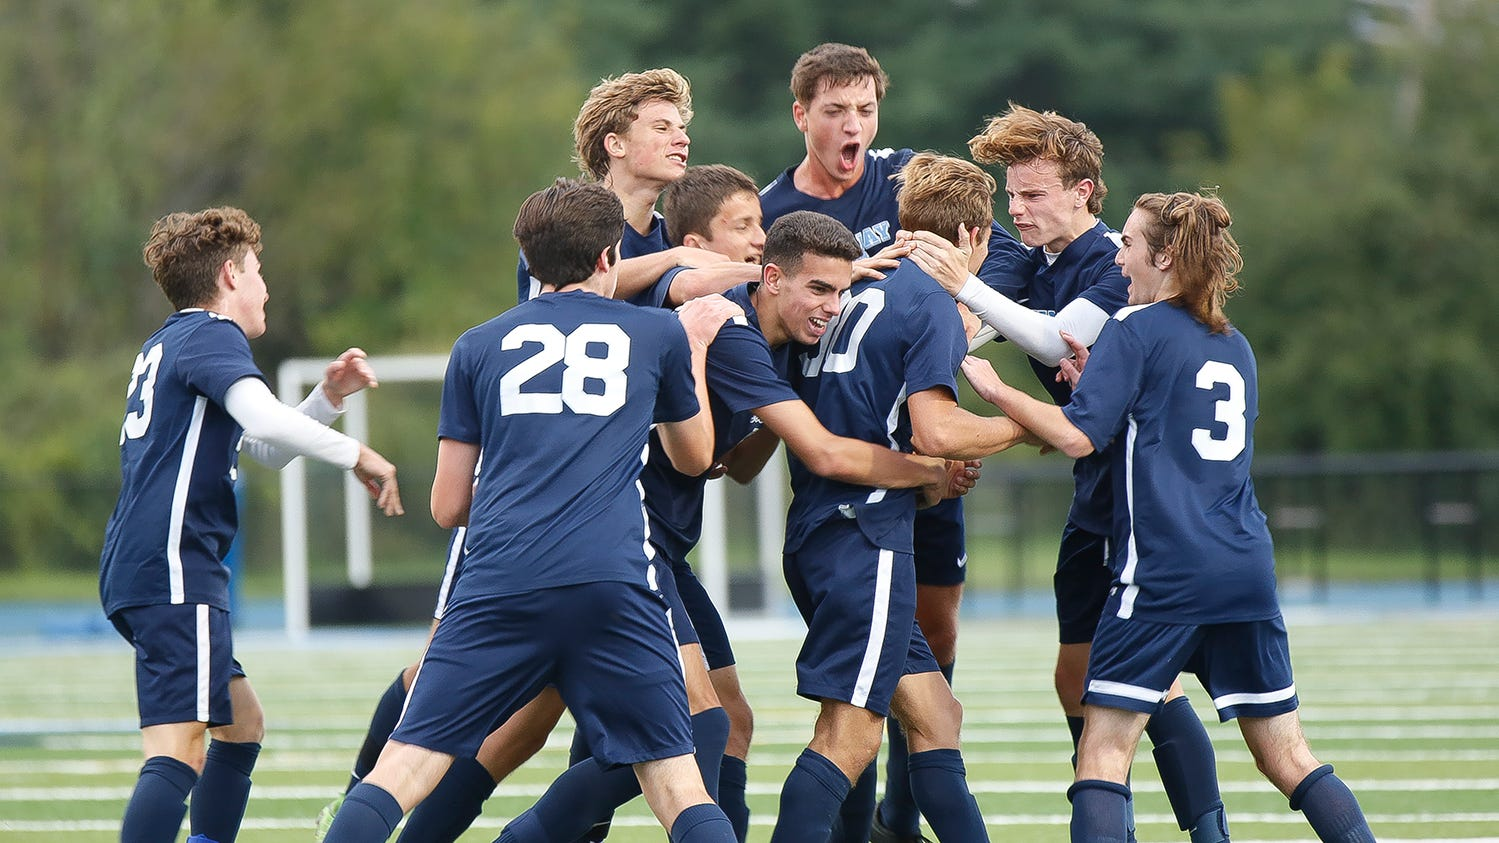 Mark Tricarico is mobbed by teammates after his late goal lifts John Jay over Arlington on Monday.